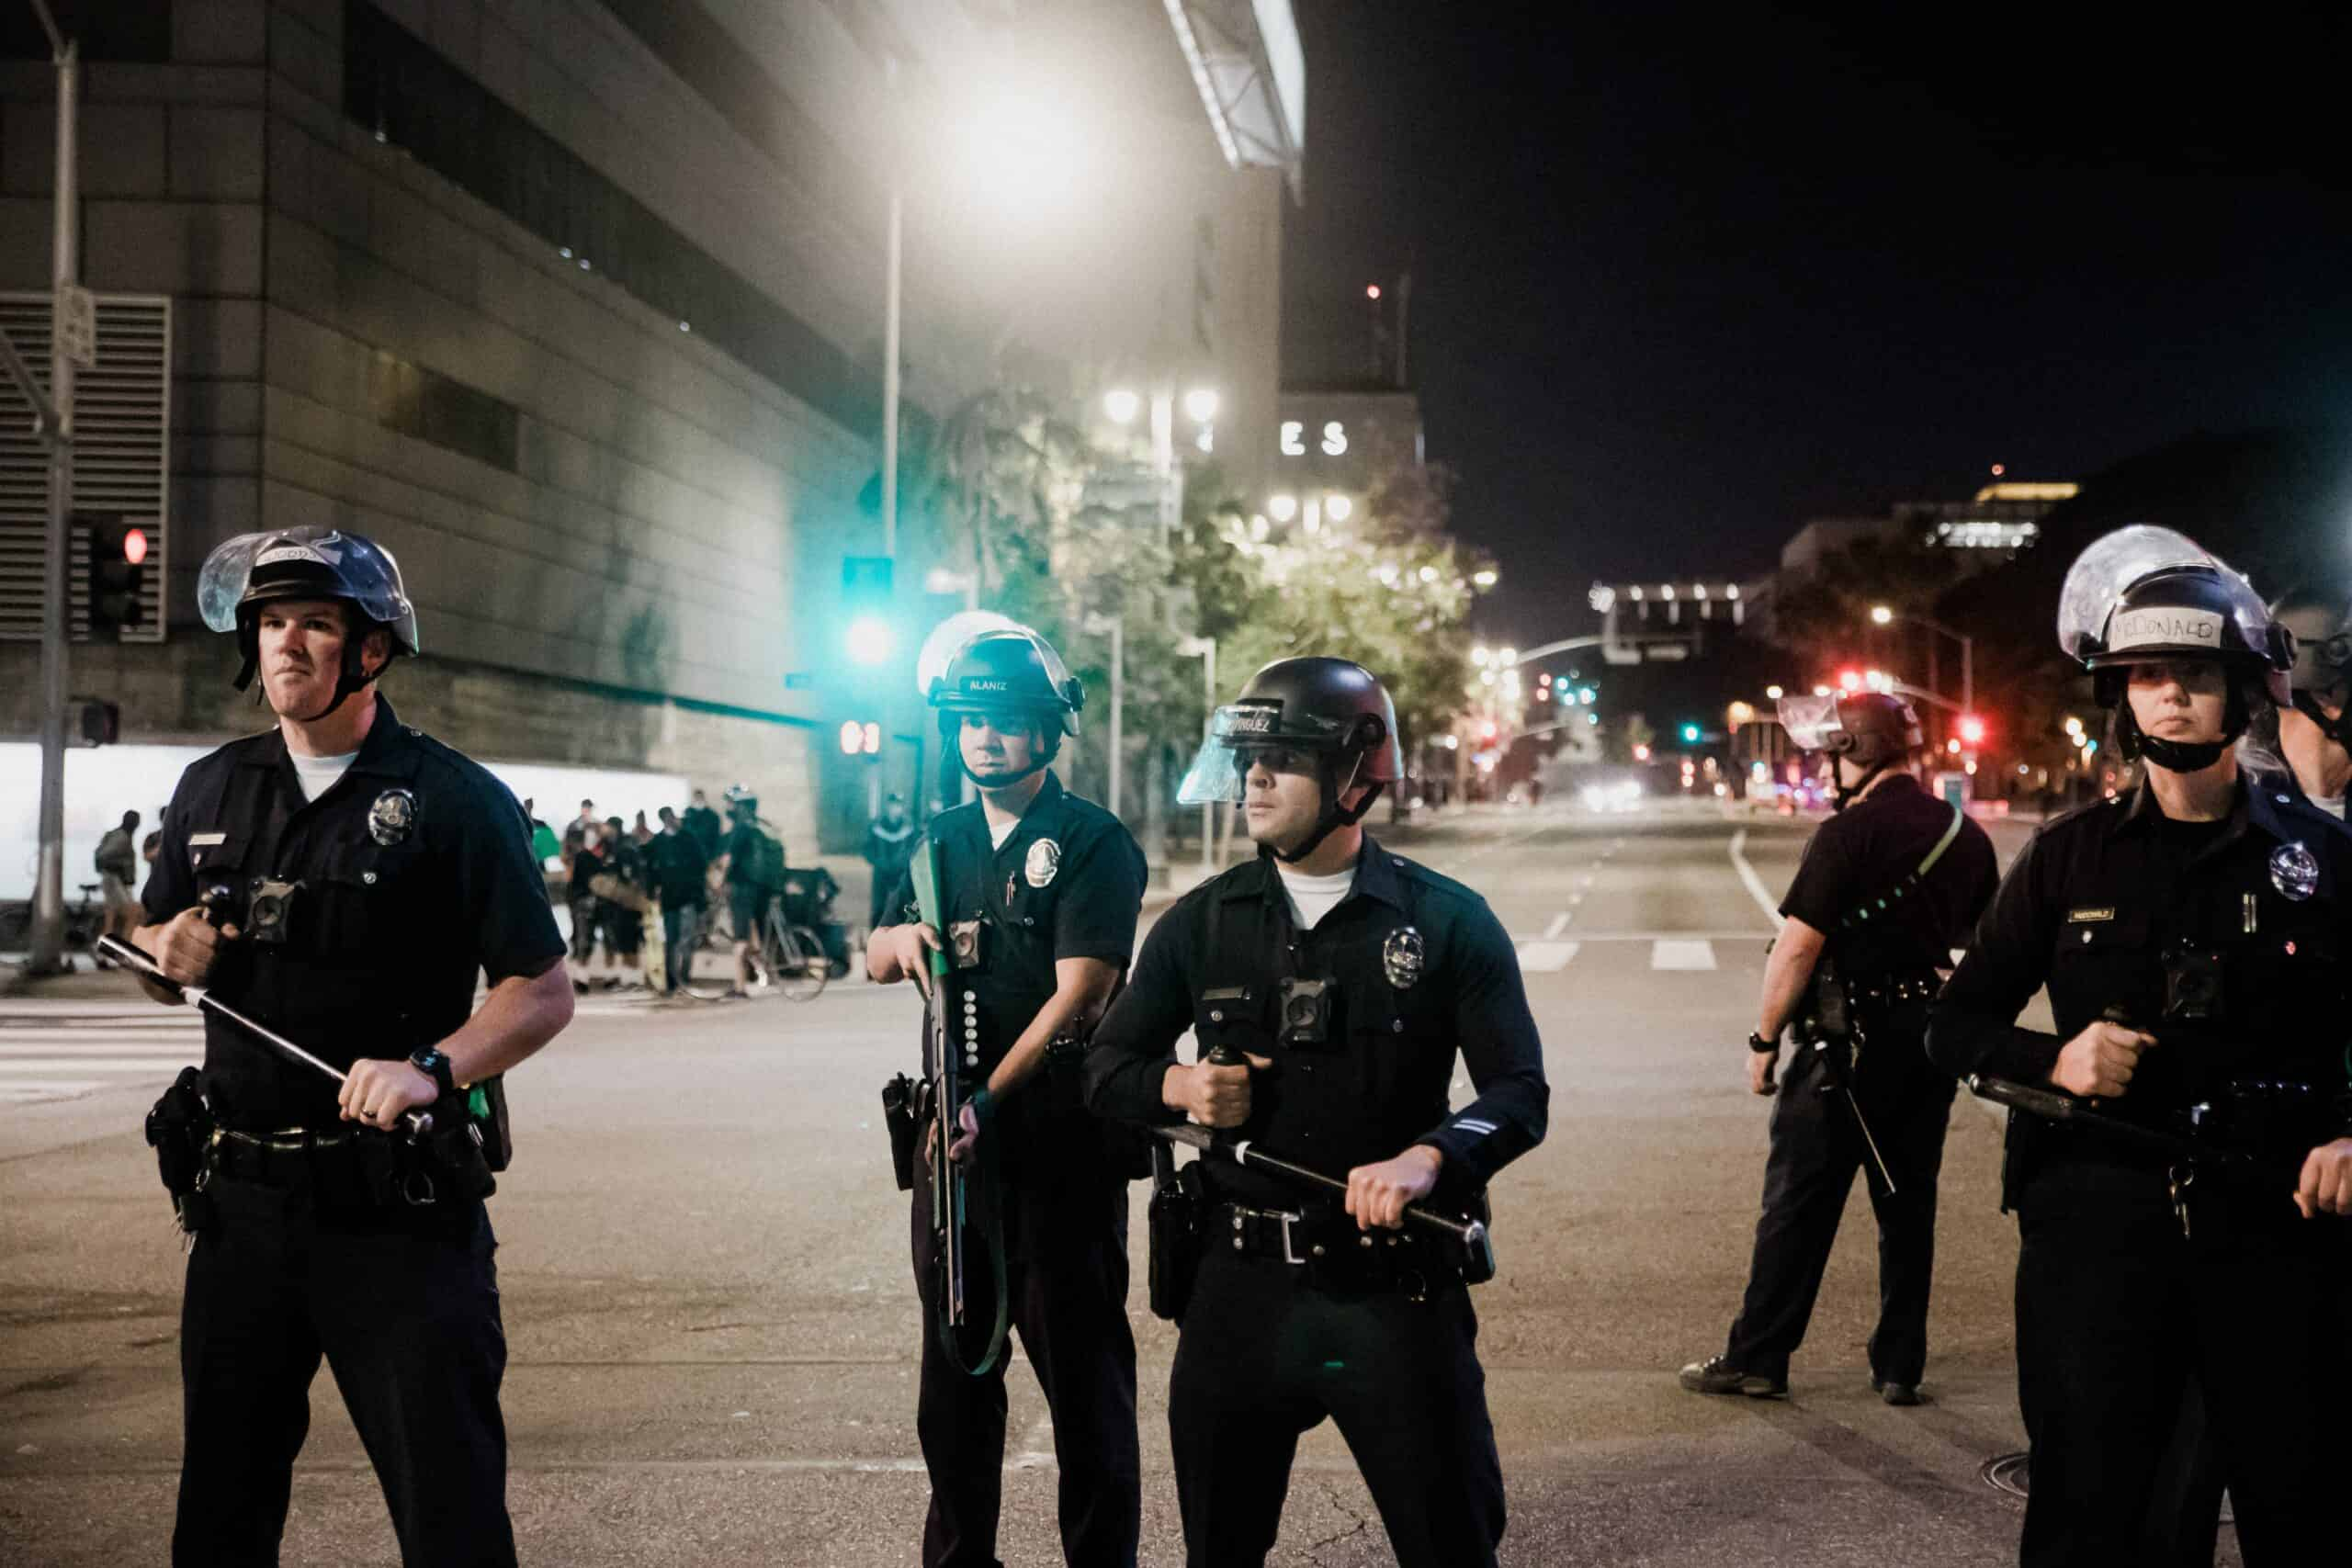 white police officers in riot gear